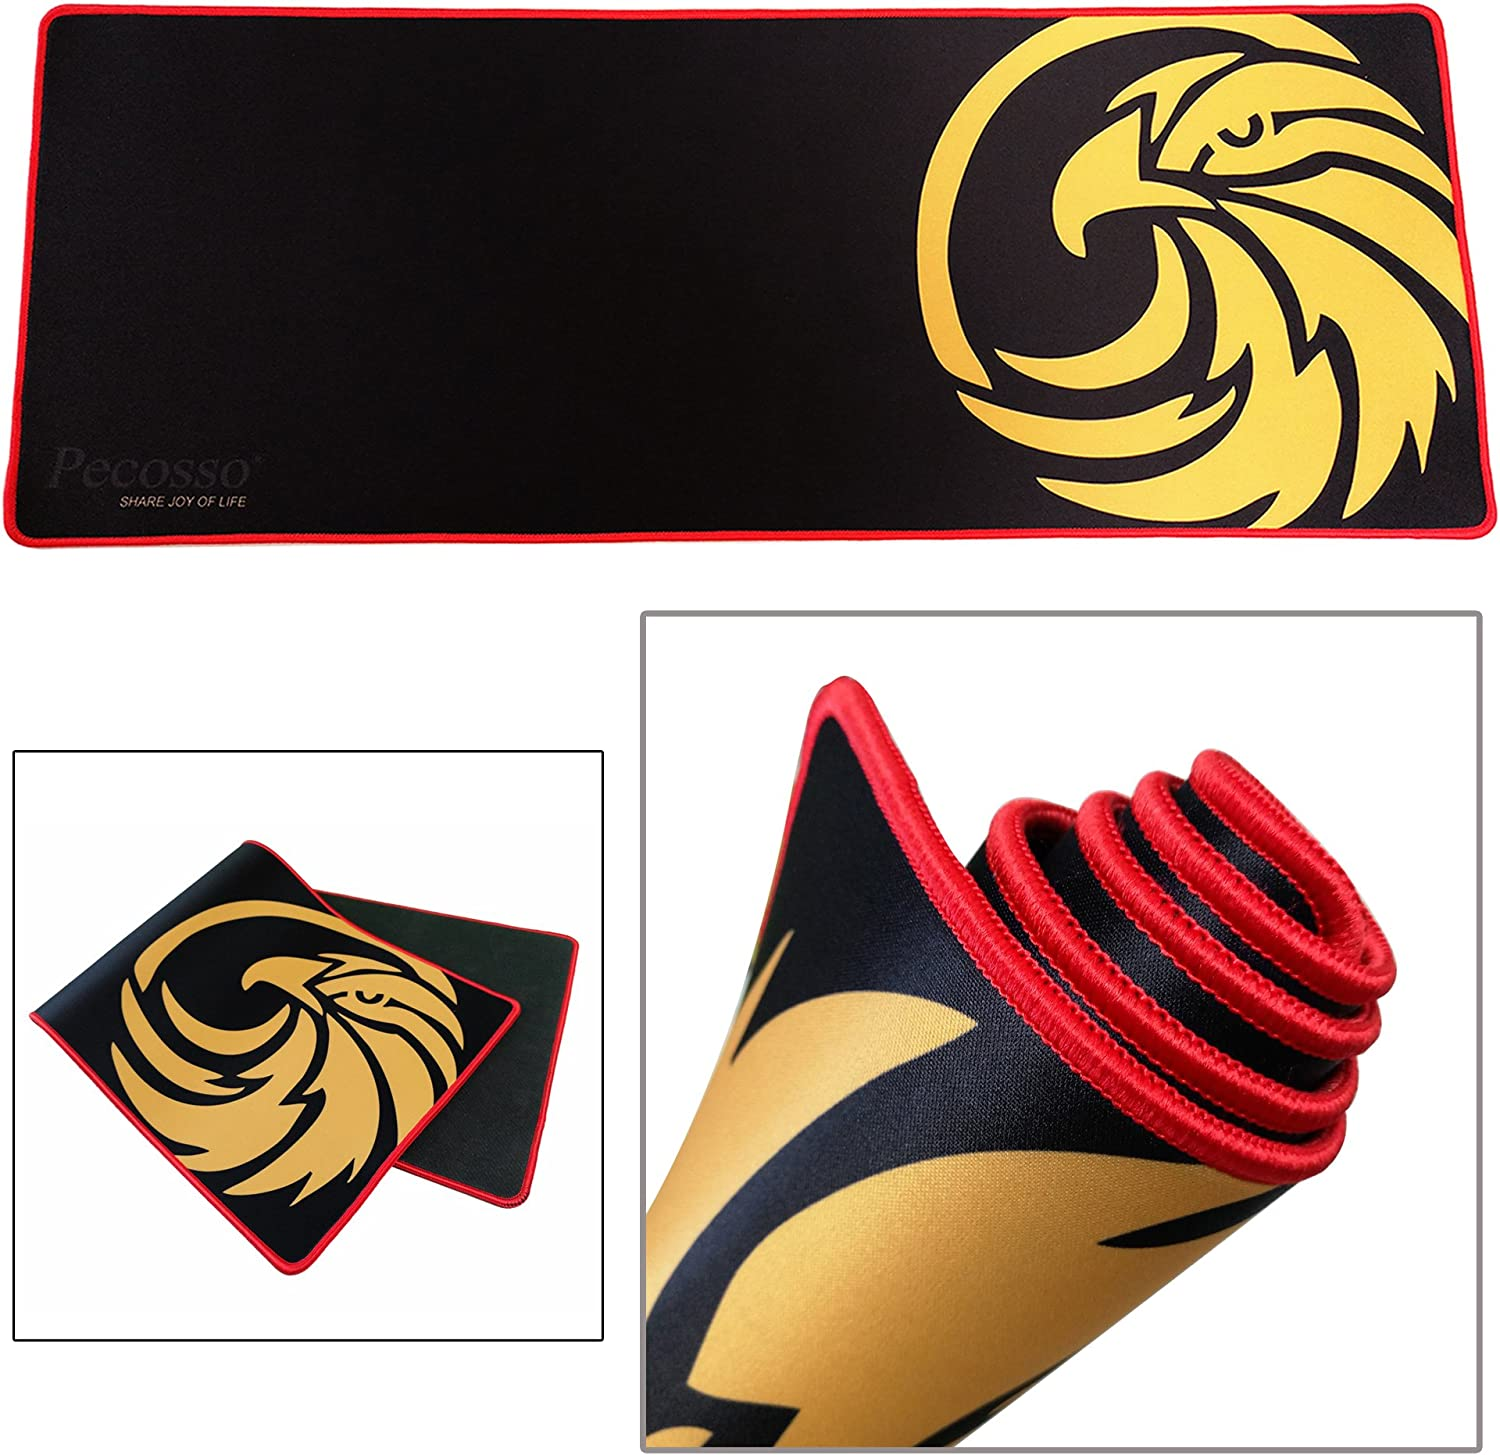 Extended Gaming Mouse Pad : Pecosso Keyboard Pad Stitched Edges Non-Slip Rubber Pads /& Precise Tracking Black /& Red Smooth Surface Mat XXL Size 31.5/×11.8 -